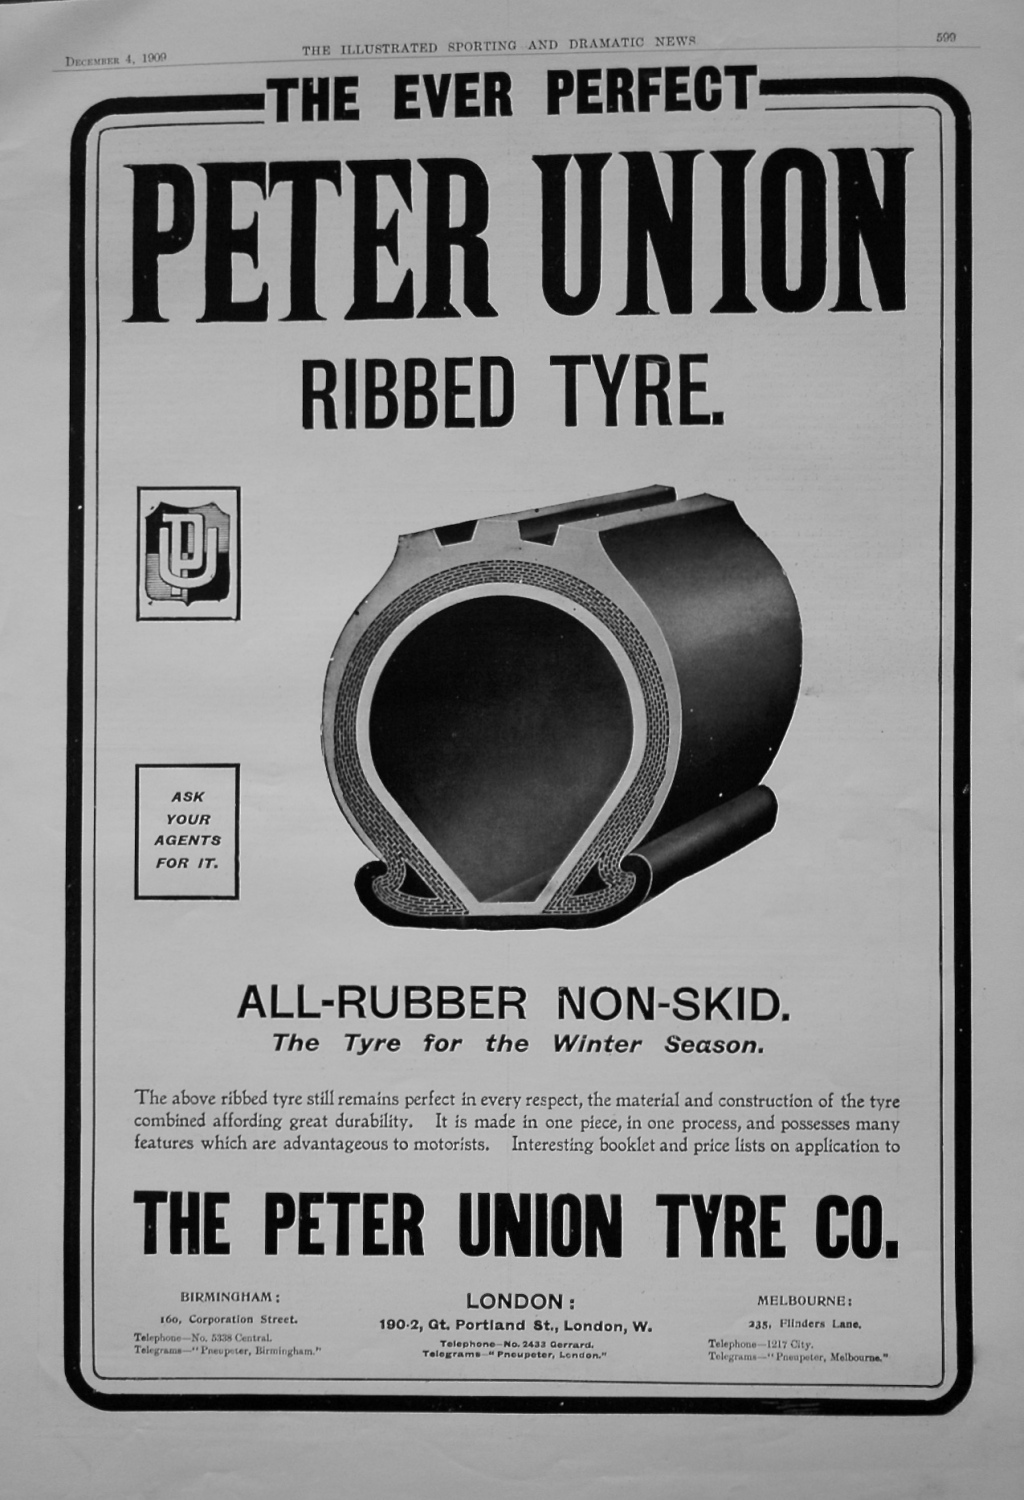 Peter Union Ribbed Tyre. 1909